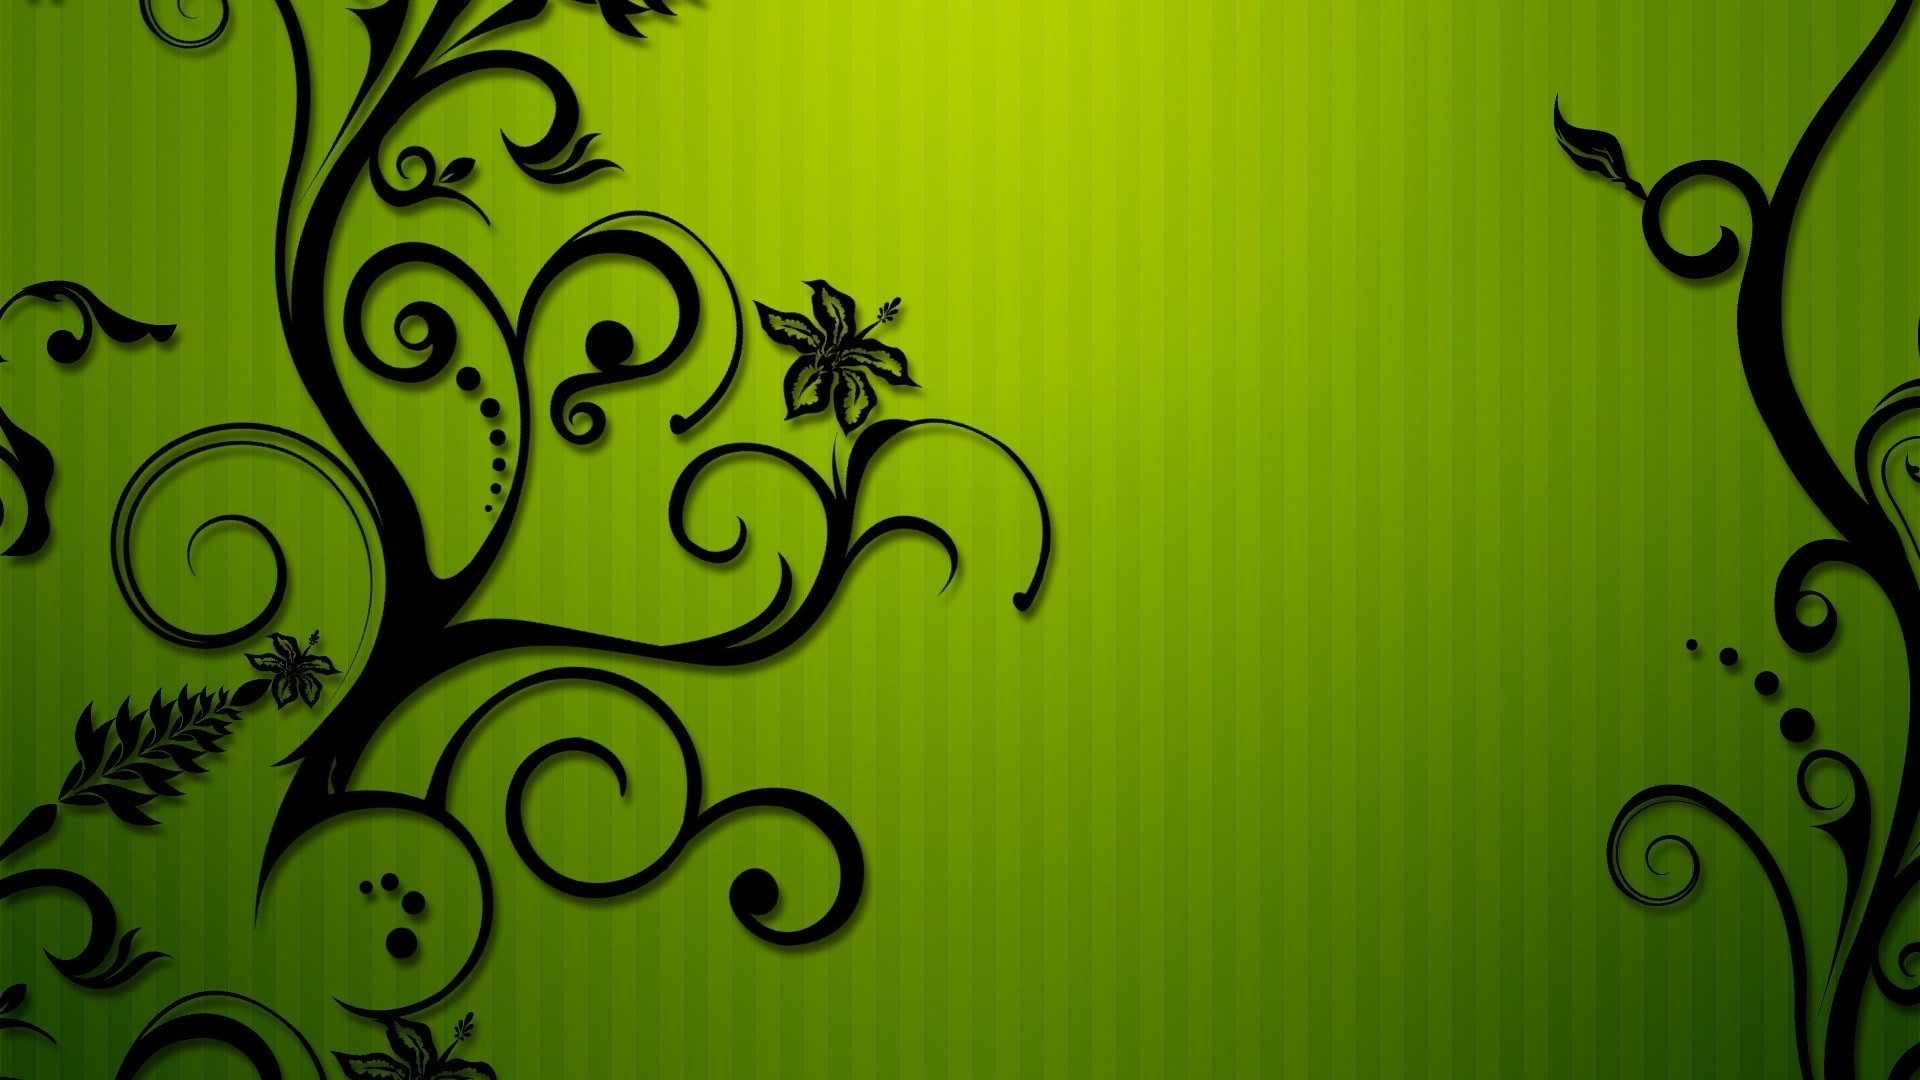 Green abstract floral flourish HD Wallpaper